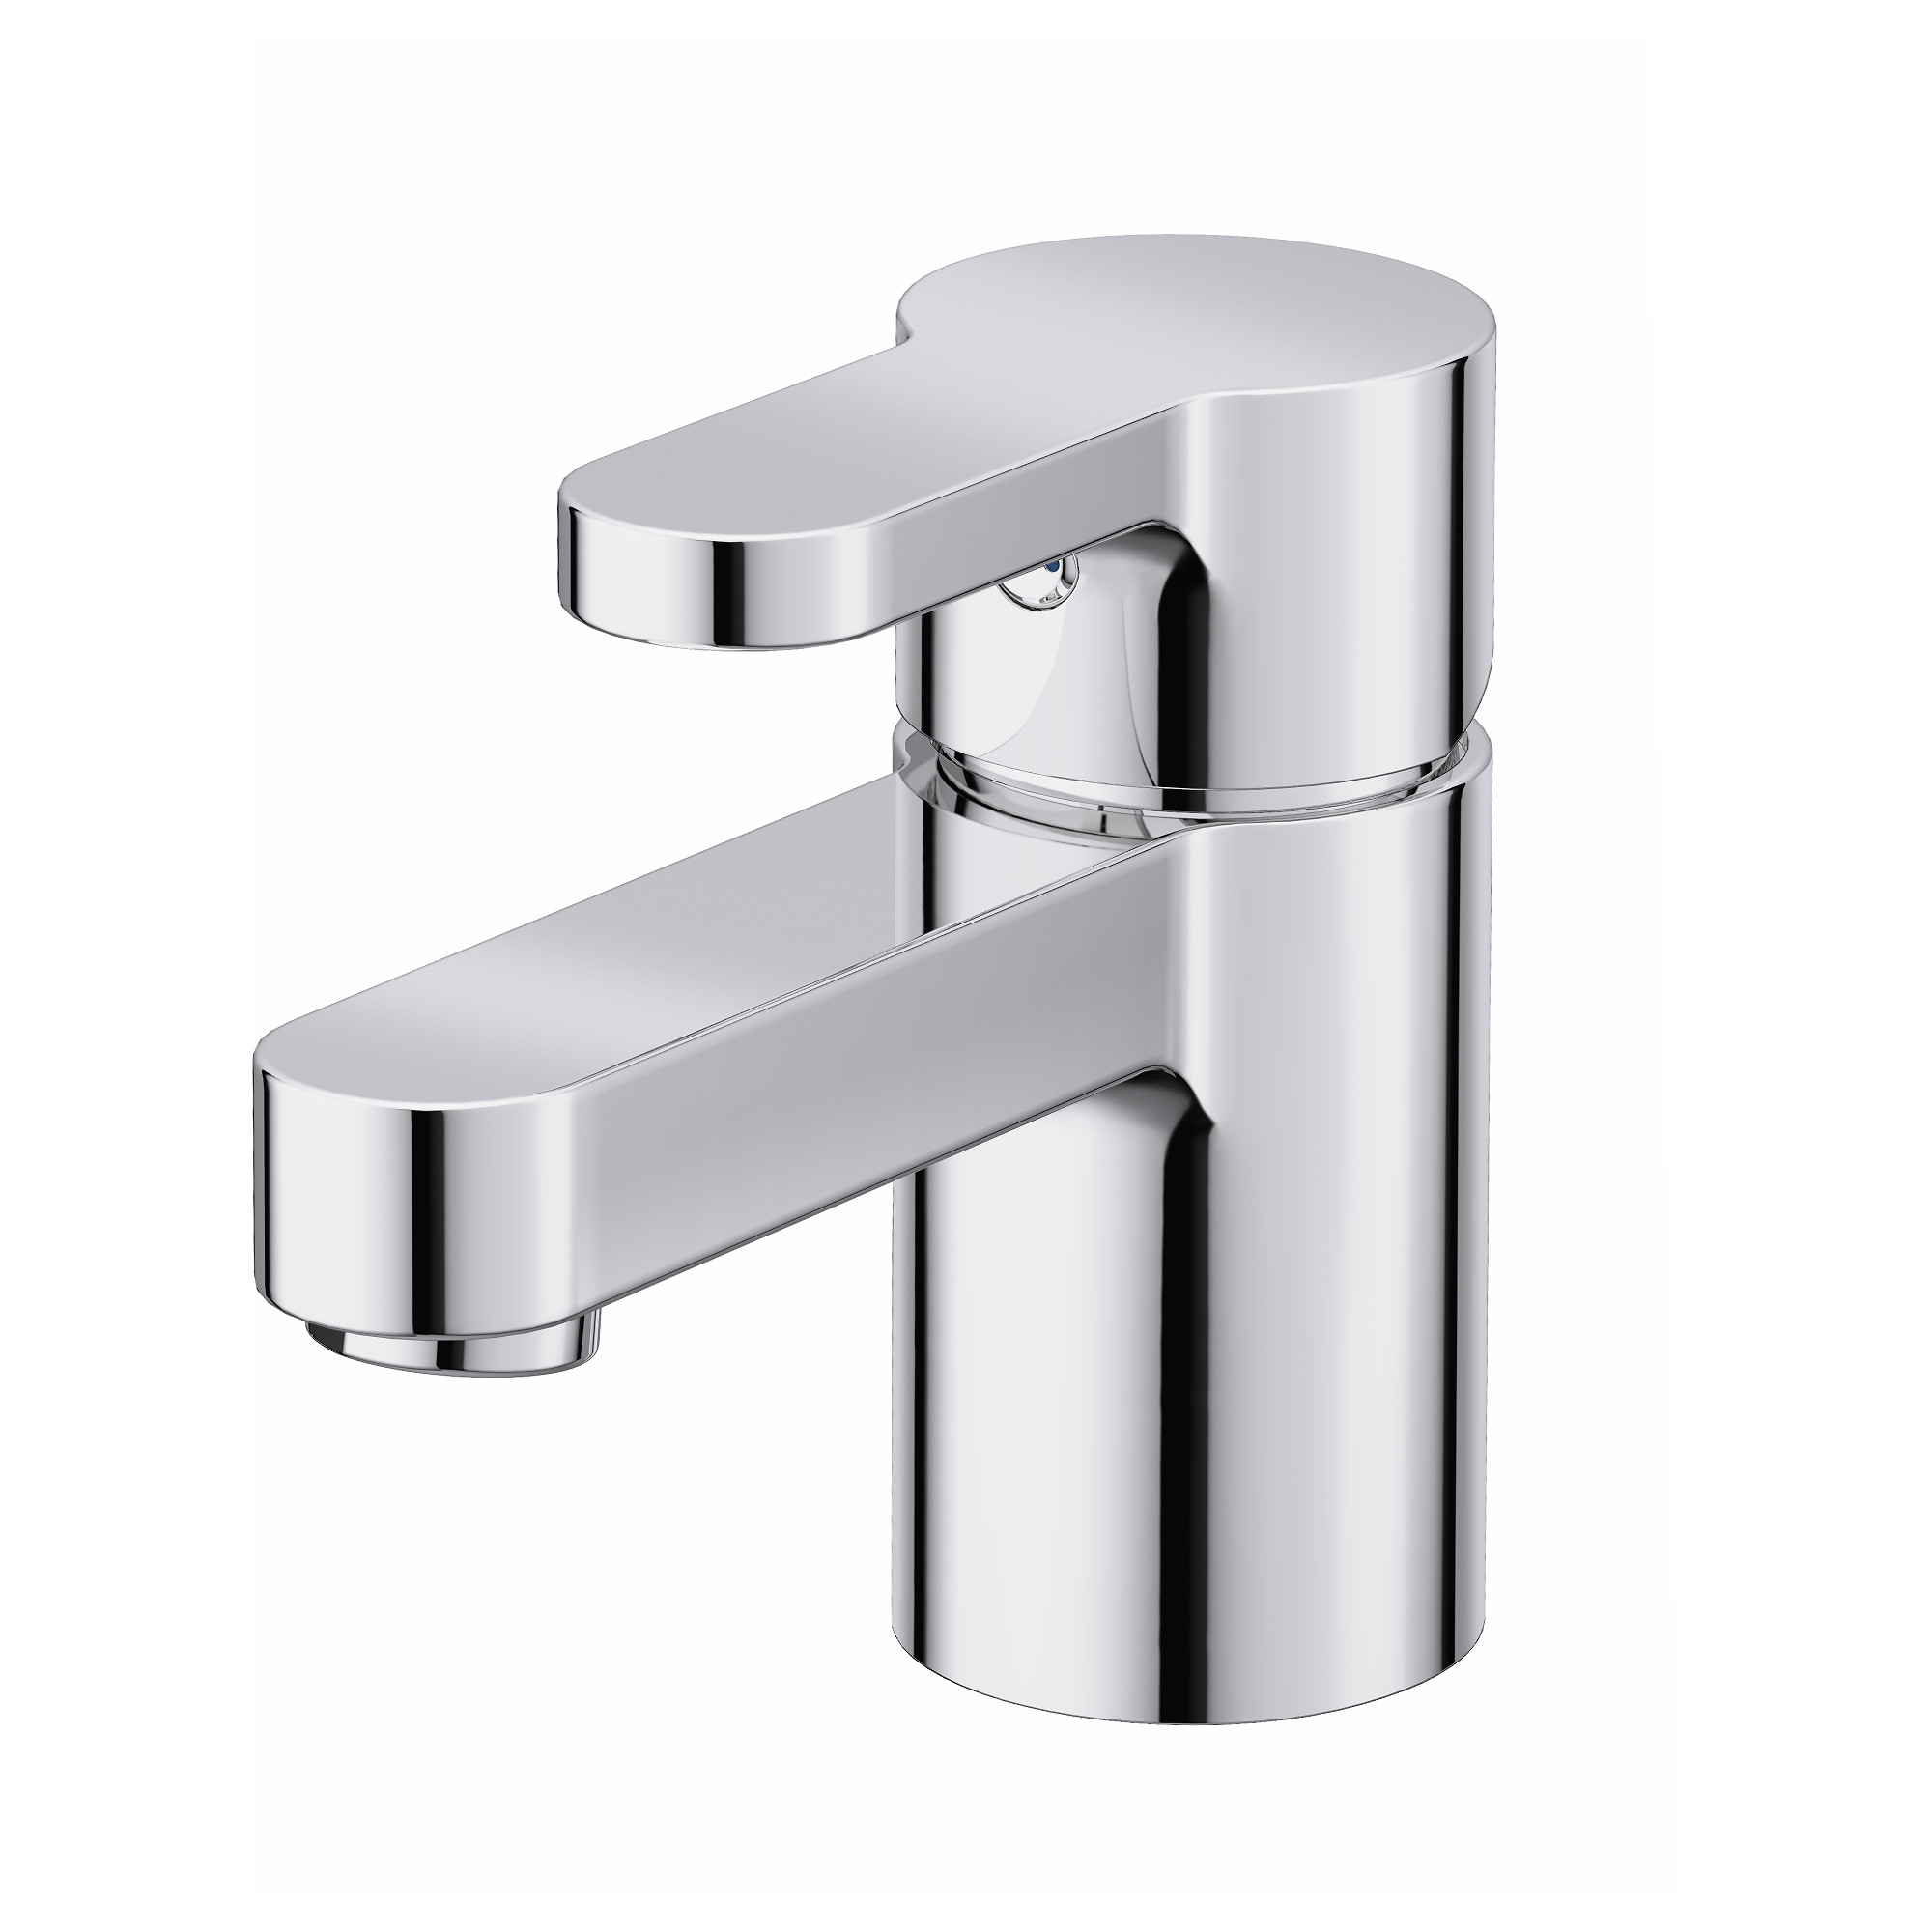 Bathroom Faucets | Moen Brantford Bathroom Faucet | Wall Mount Bathroom Faucet